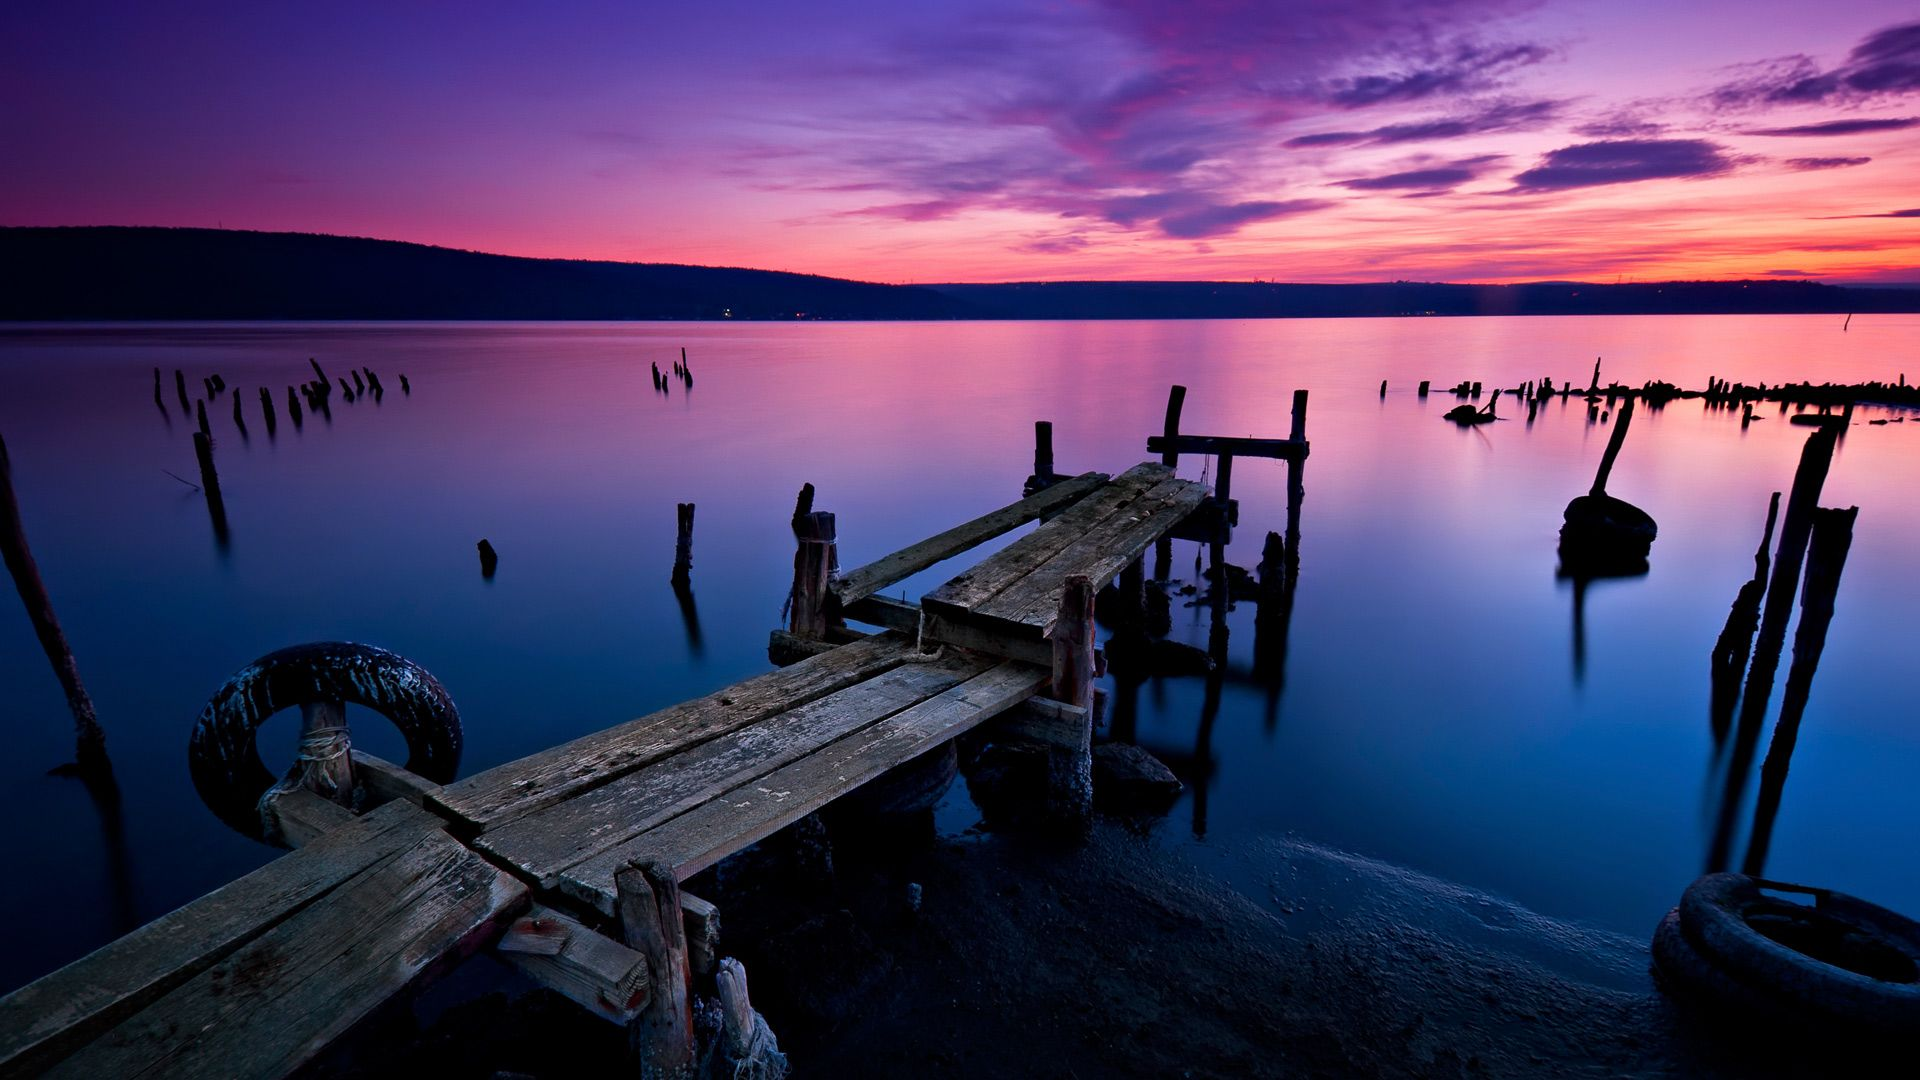 lock screen wallpapers hd for windows 10,sky,water,nature,pier,sunset